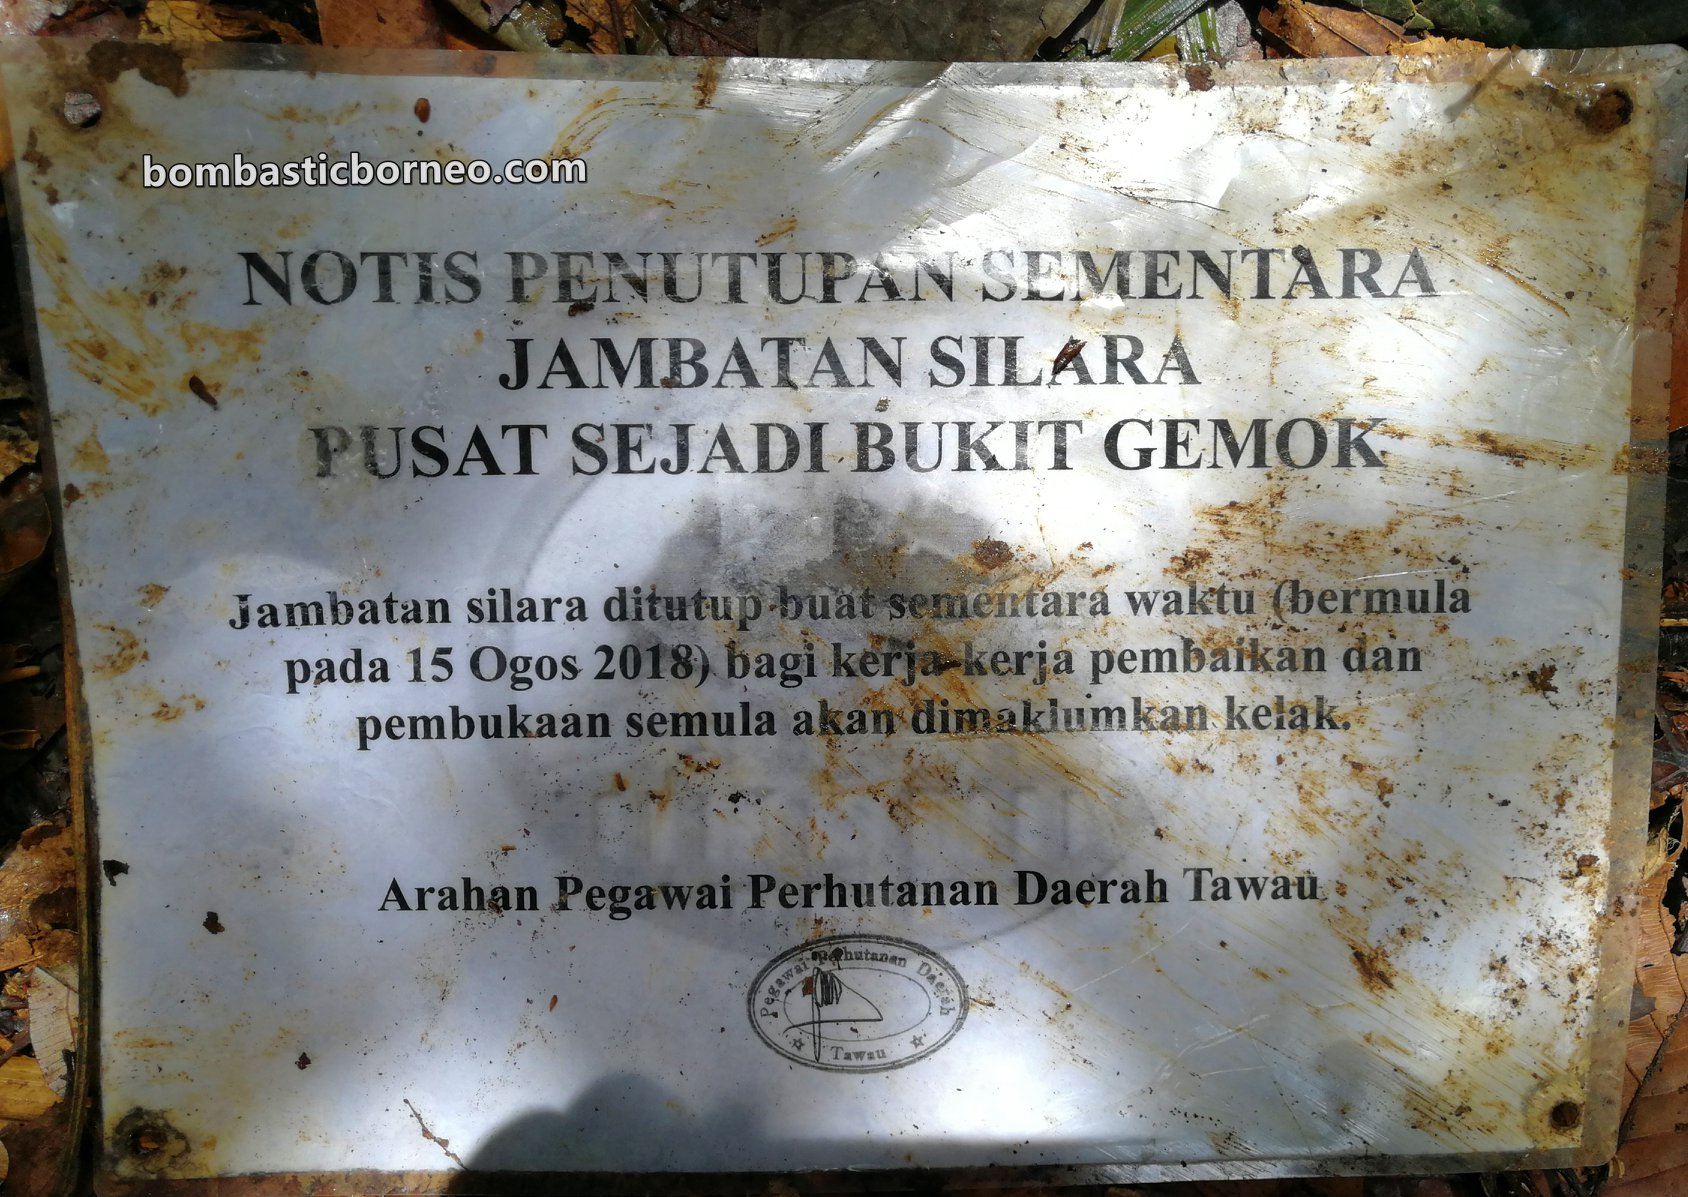 Gemok Hill Forest Reserve, jungle trekking, hiking, conservation, exploration, Hutan simpan, canopy bridge, Malaysia, Sabah, Tourism, travel guide, Borneo,